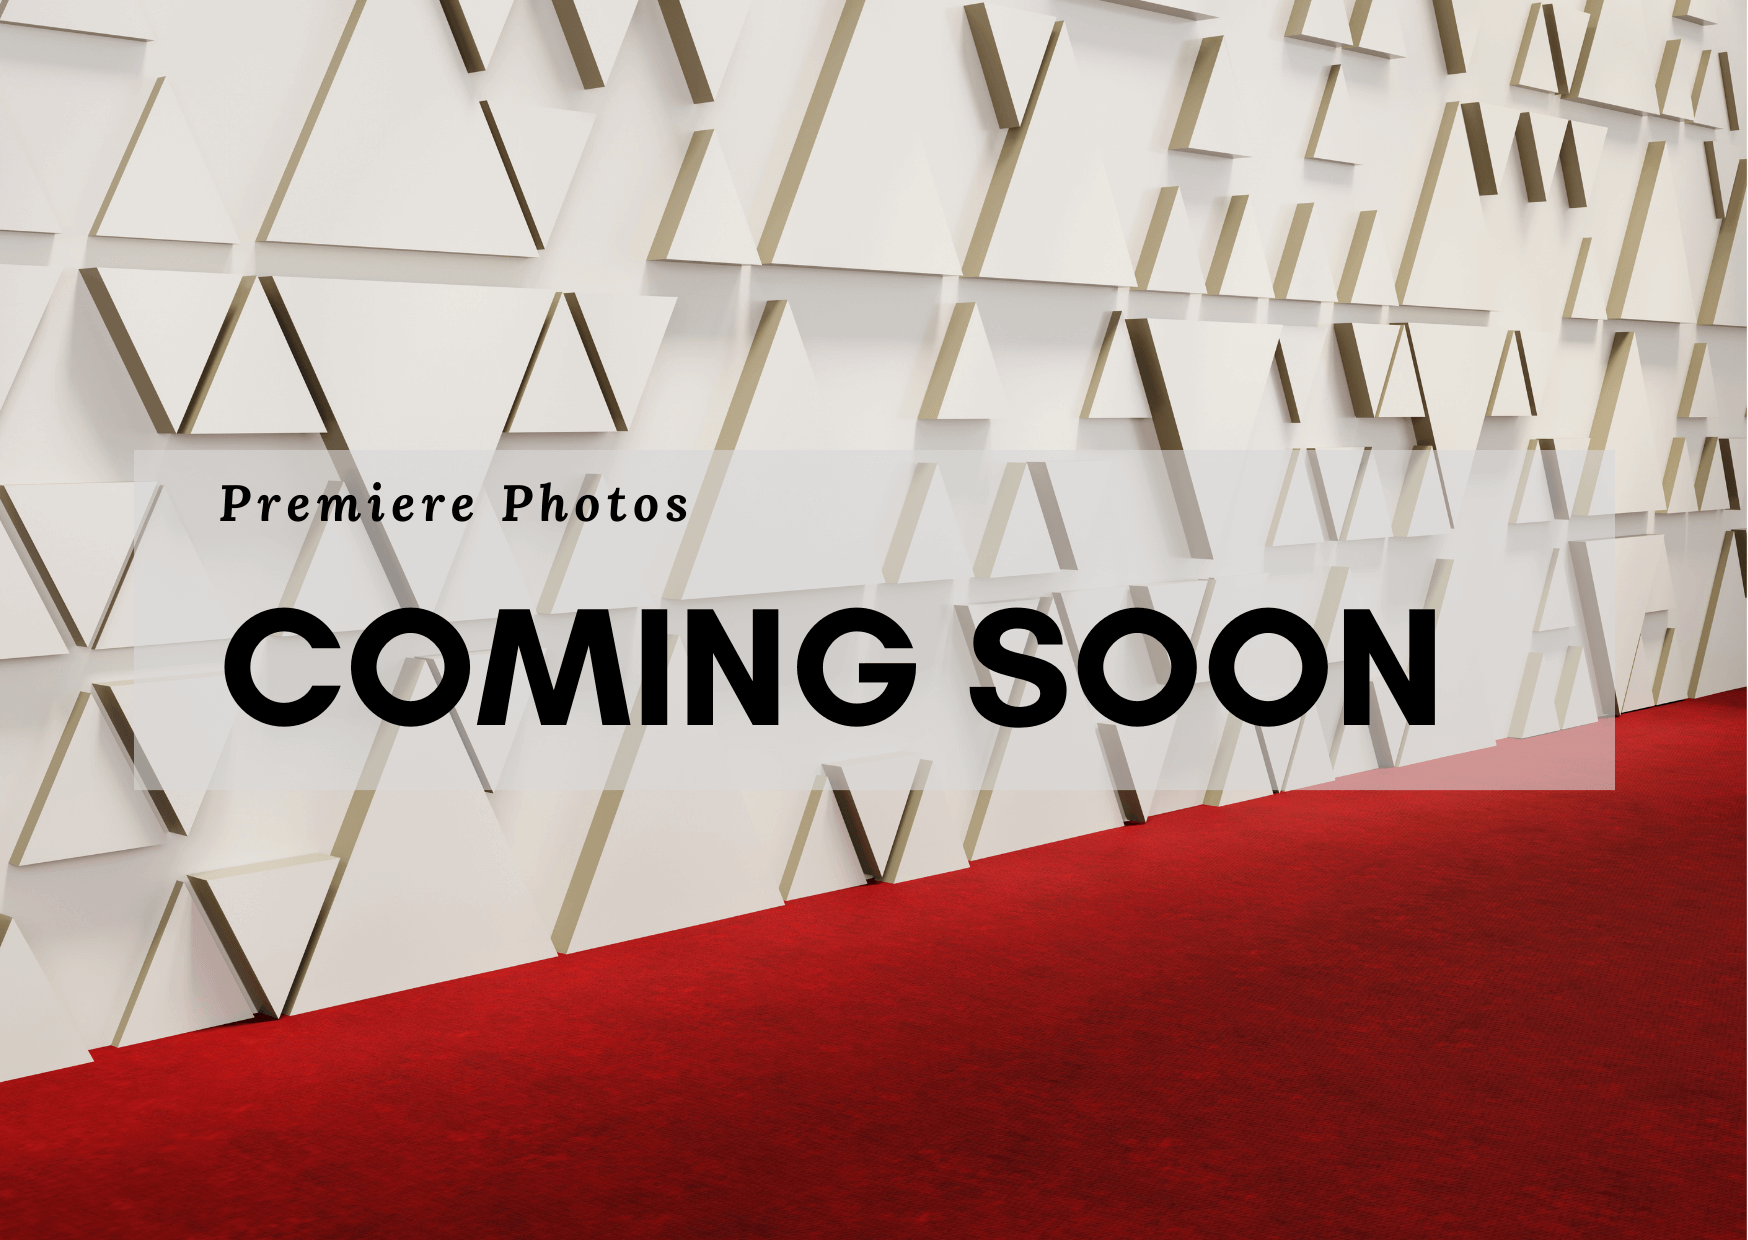 Premiere Photos Coming Soon